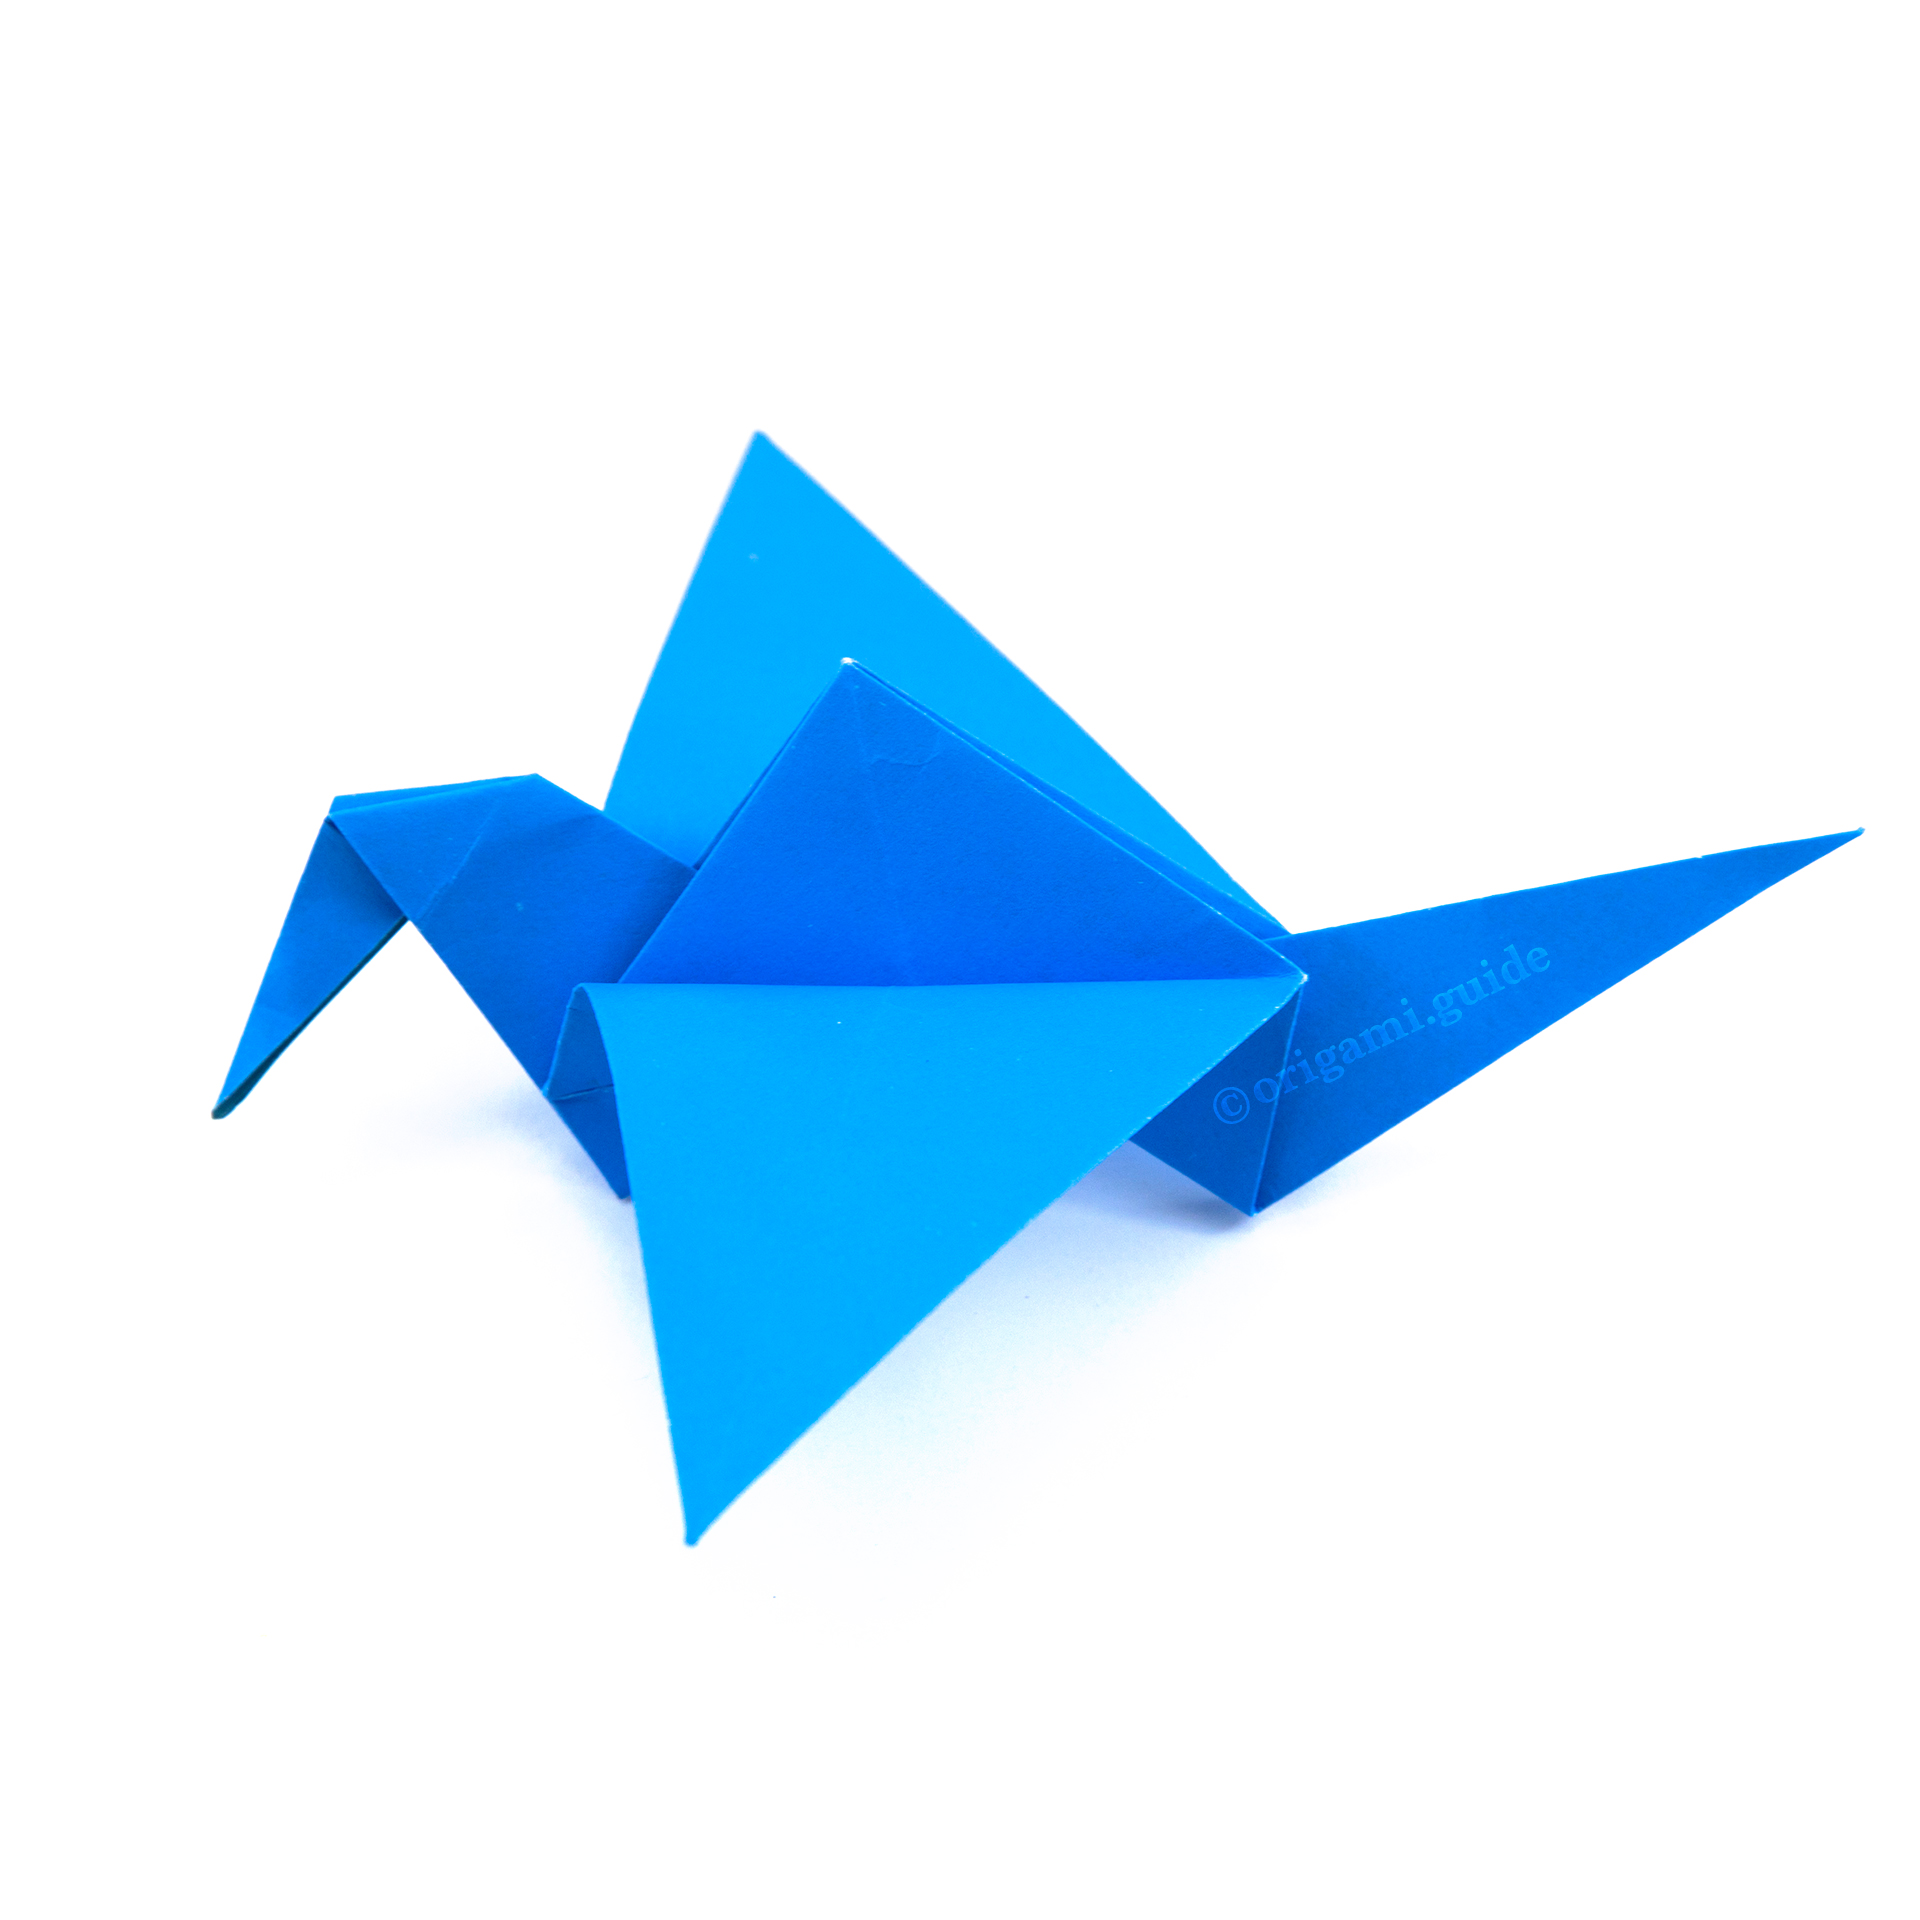 Origami doves / birds | Siri Harding's collection of 10+ origami dove ideas | 1920x1920